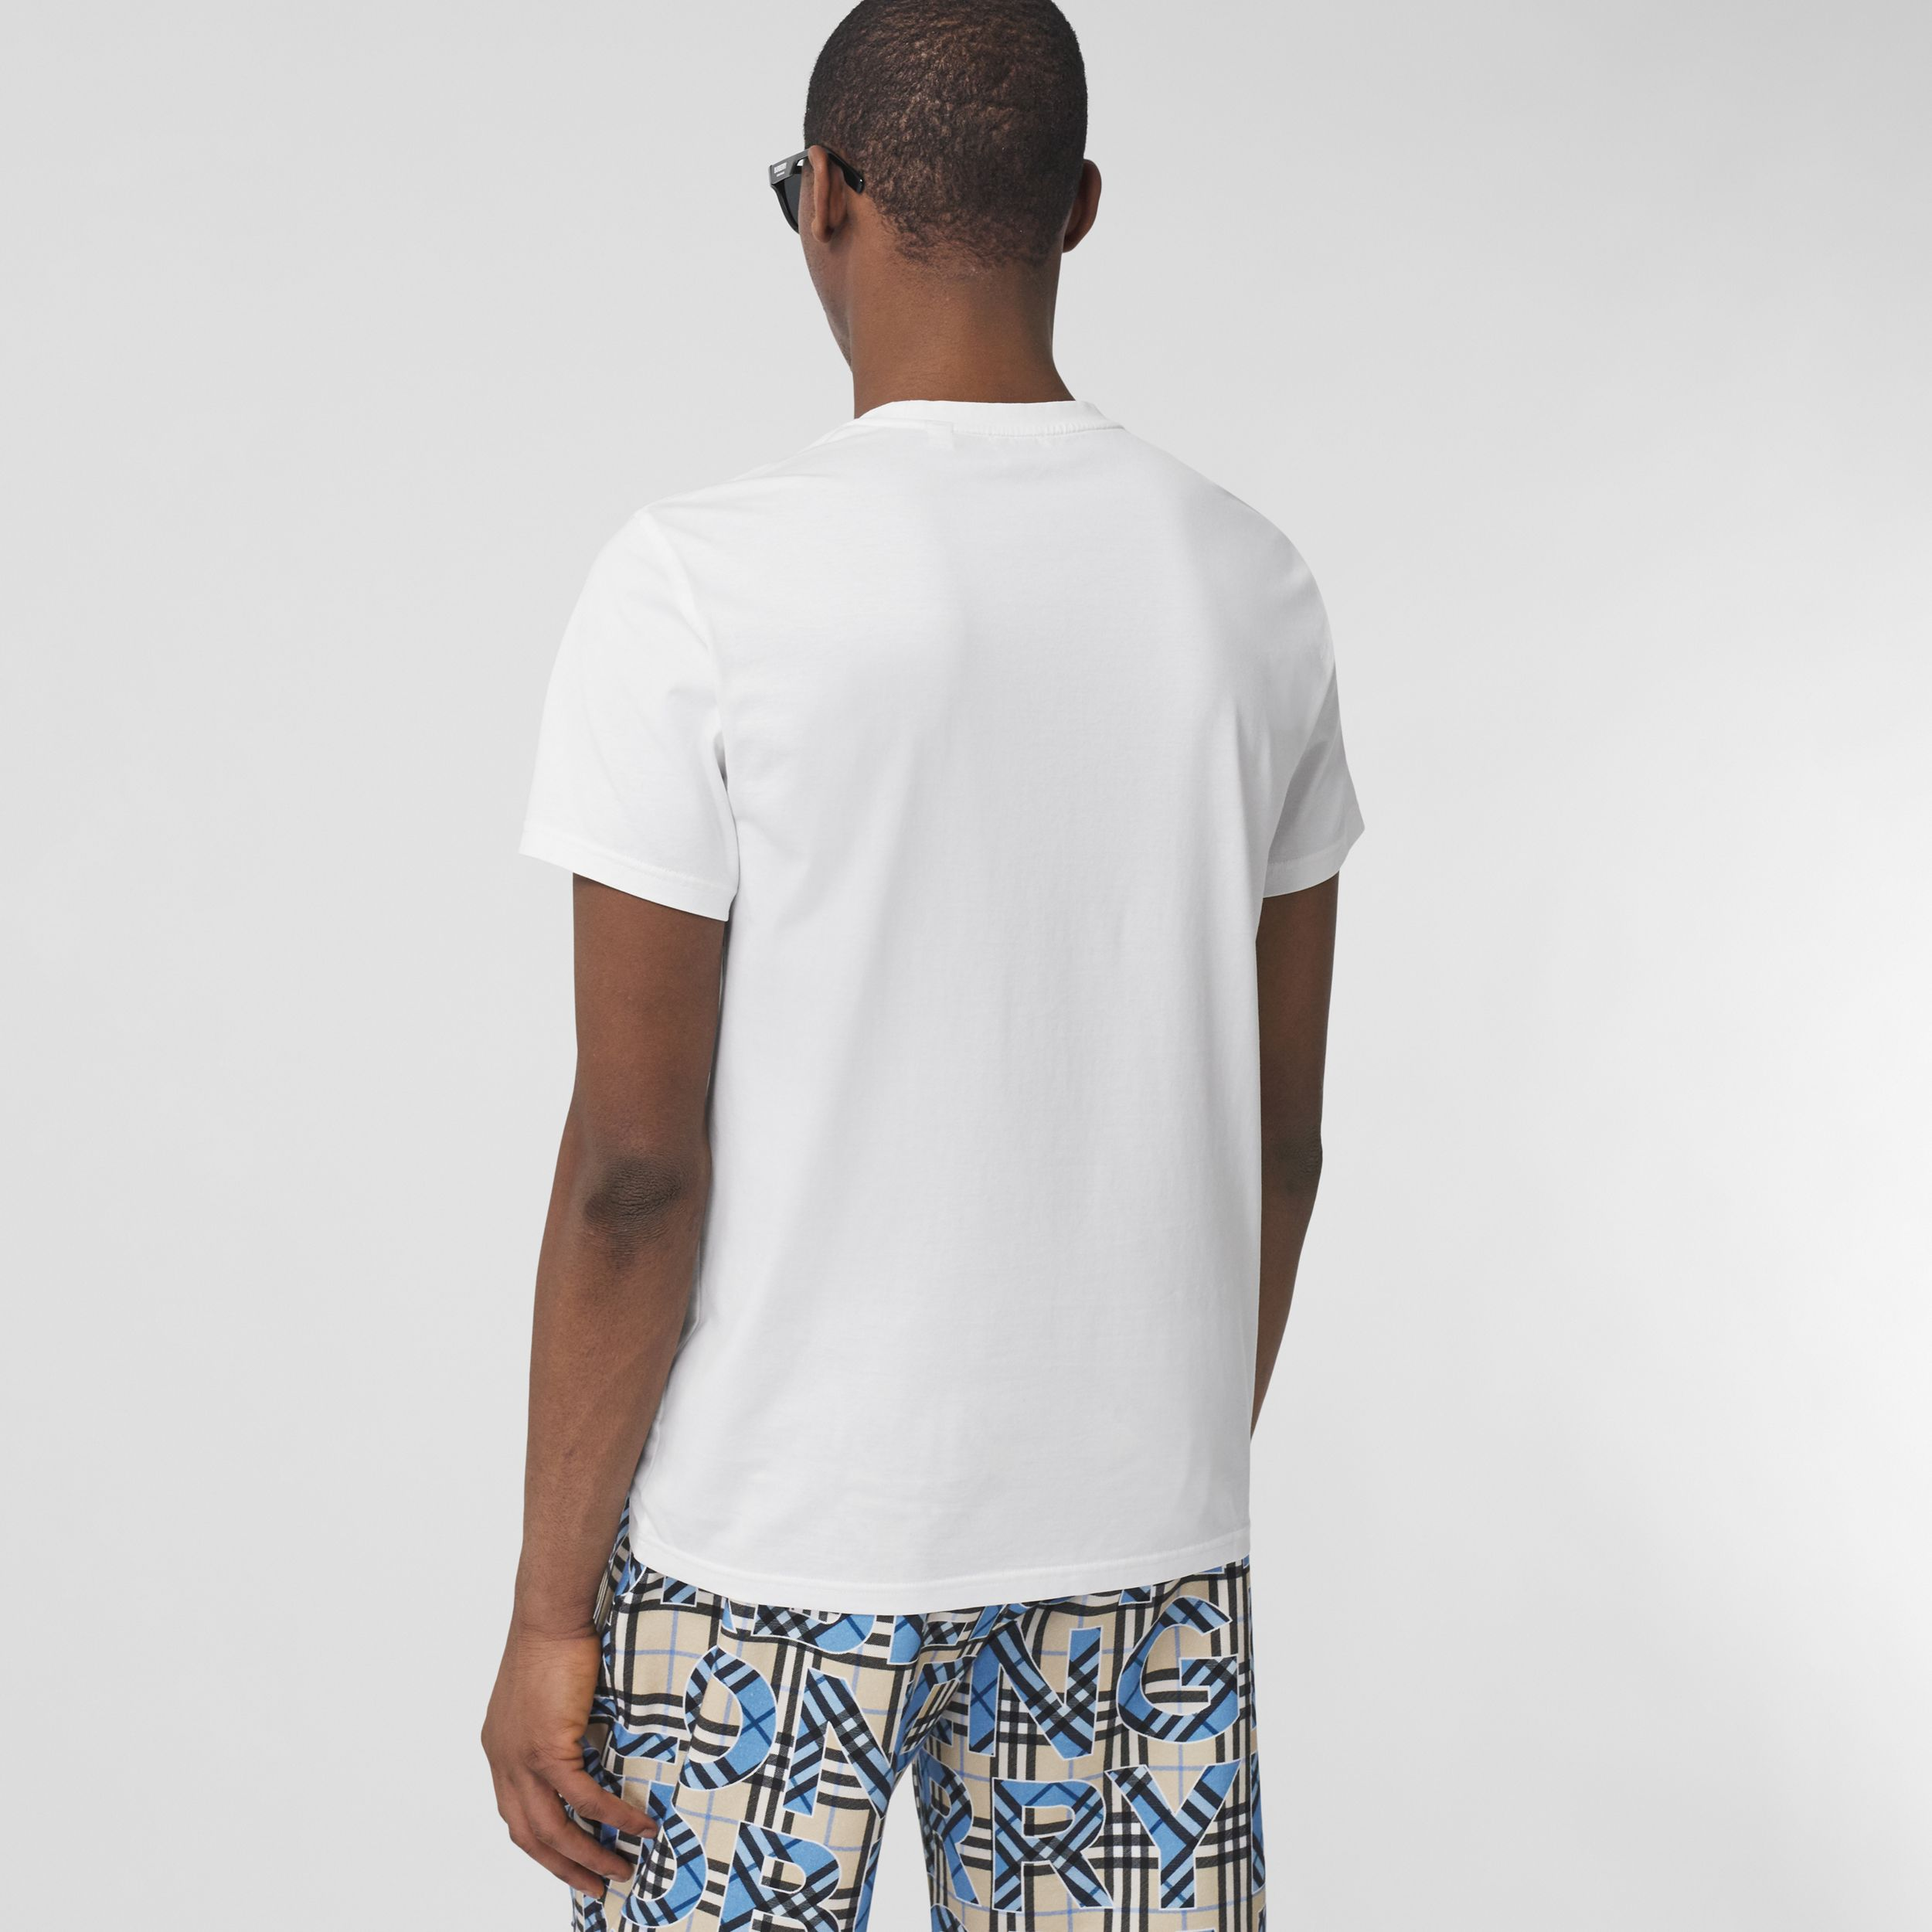 Monogram Motif Cotton T-shirt in White - Men | Burberry - 3